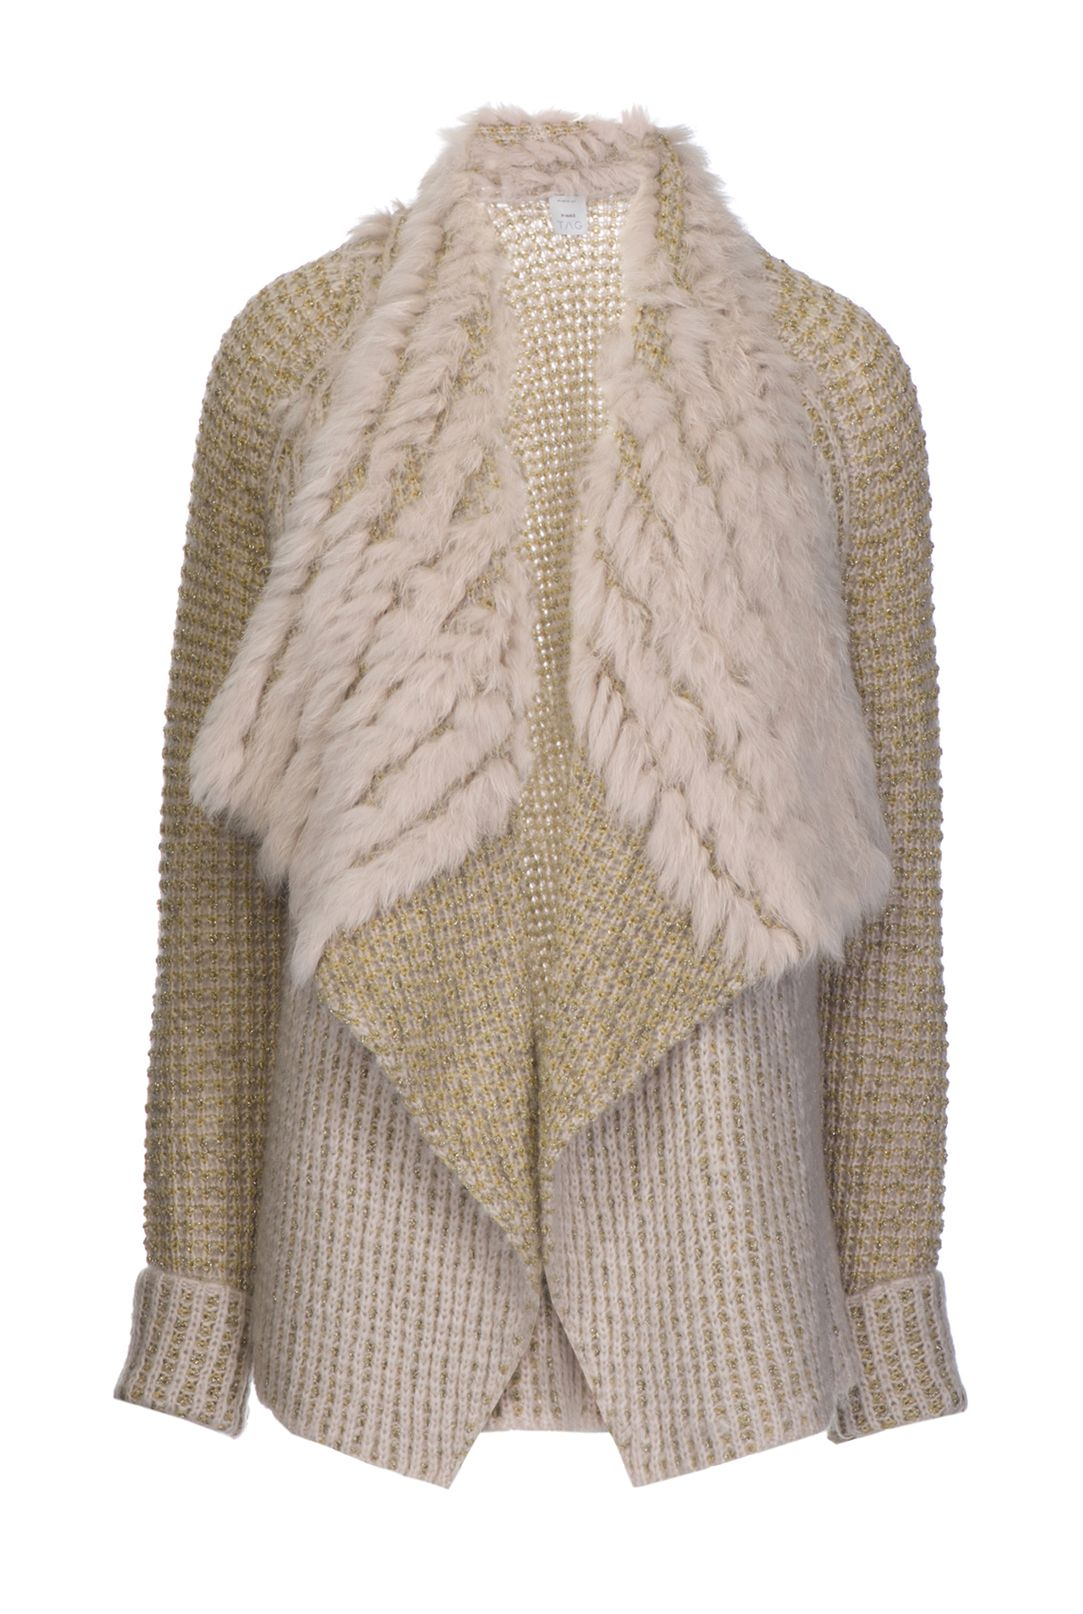 Pinko oversized cardigan Low Shipping Cheap Online Choice Cheap Online Limit Offer Cheap Genuine Cheap Price 6dagrjuGSJ